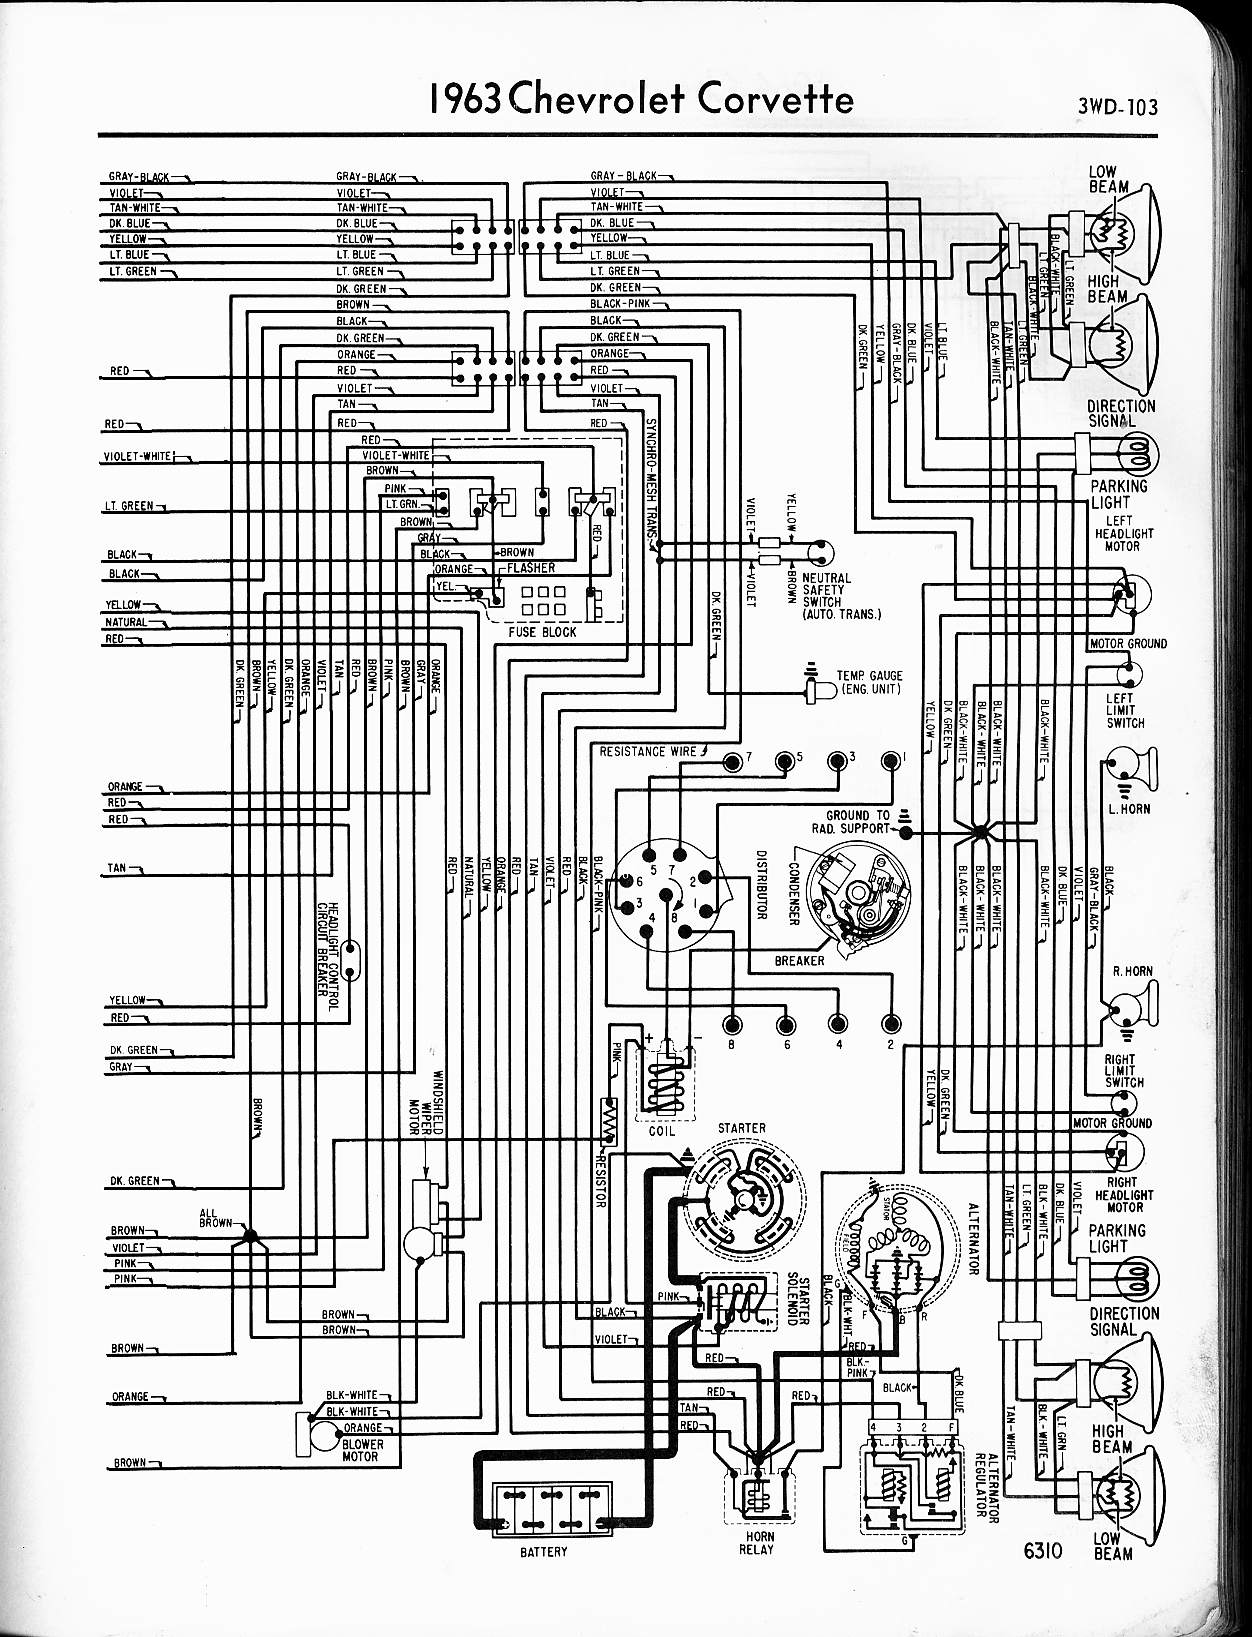 1978 Chevy Truck Wiring Diagram Headlights Library Chevrolet El Camino Schematic 57 65 Diagrams Rh Oldcarmanualproject Com 1987 Gmc Headlight For A